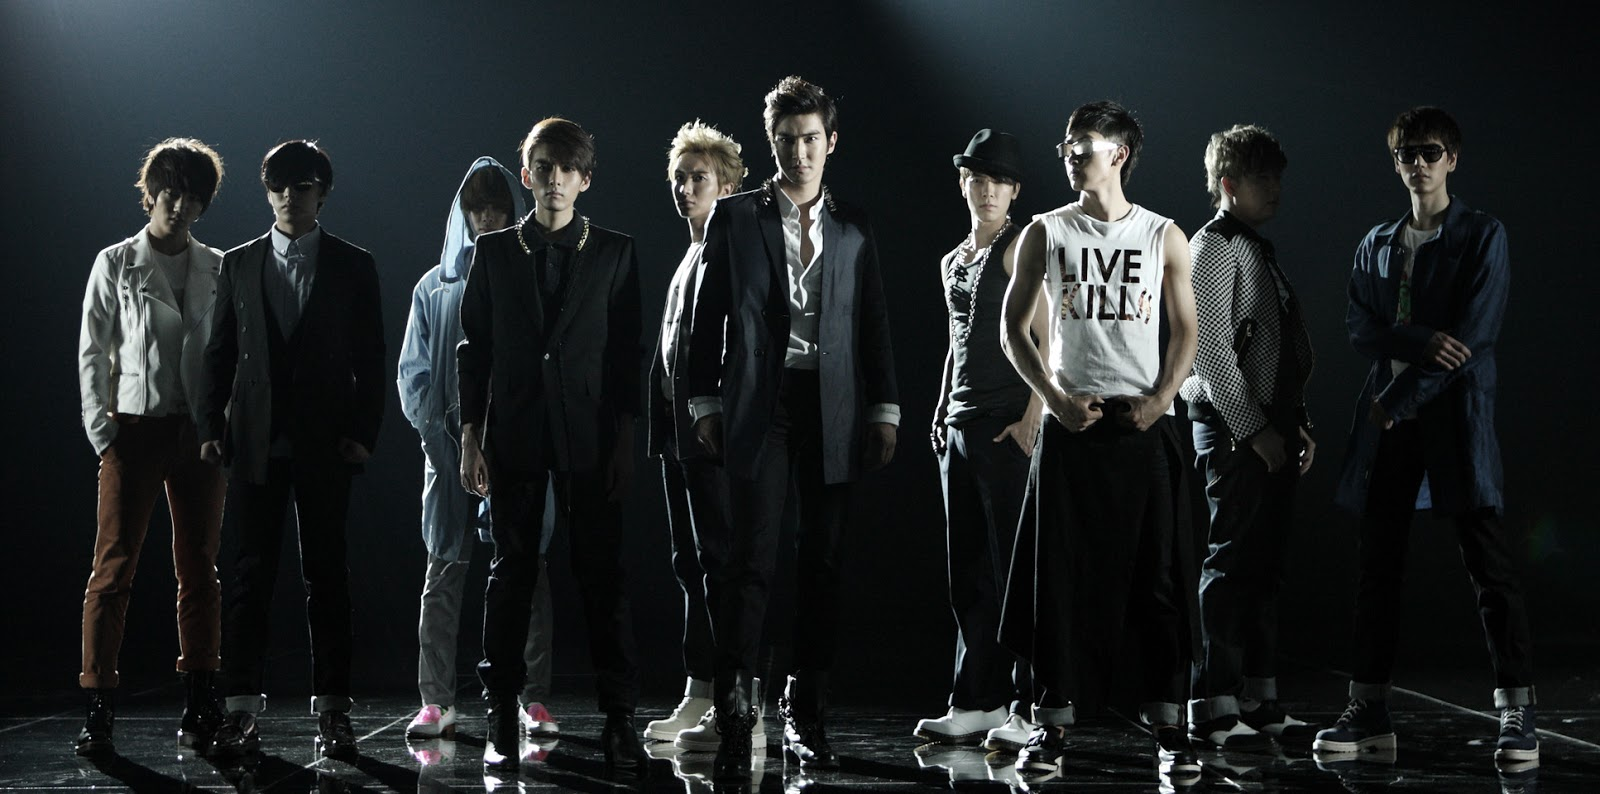 super junior 슈퍼 주니어 suju wallpaper hd 2 super junior